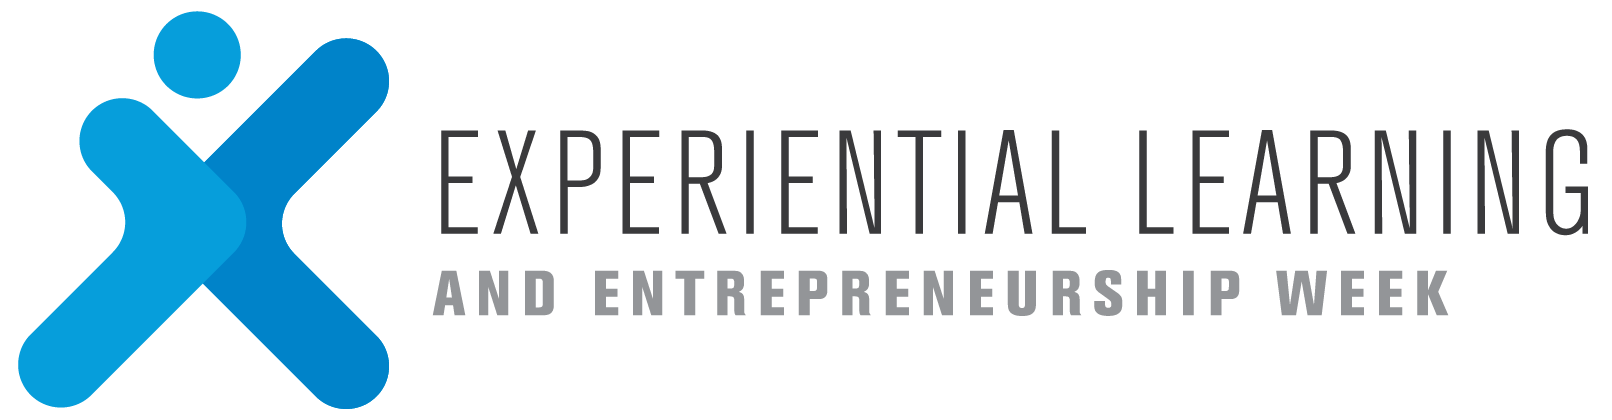 2018 Experiential Learning and Entrepreneurship Week